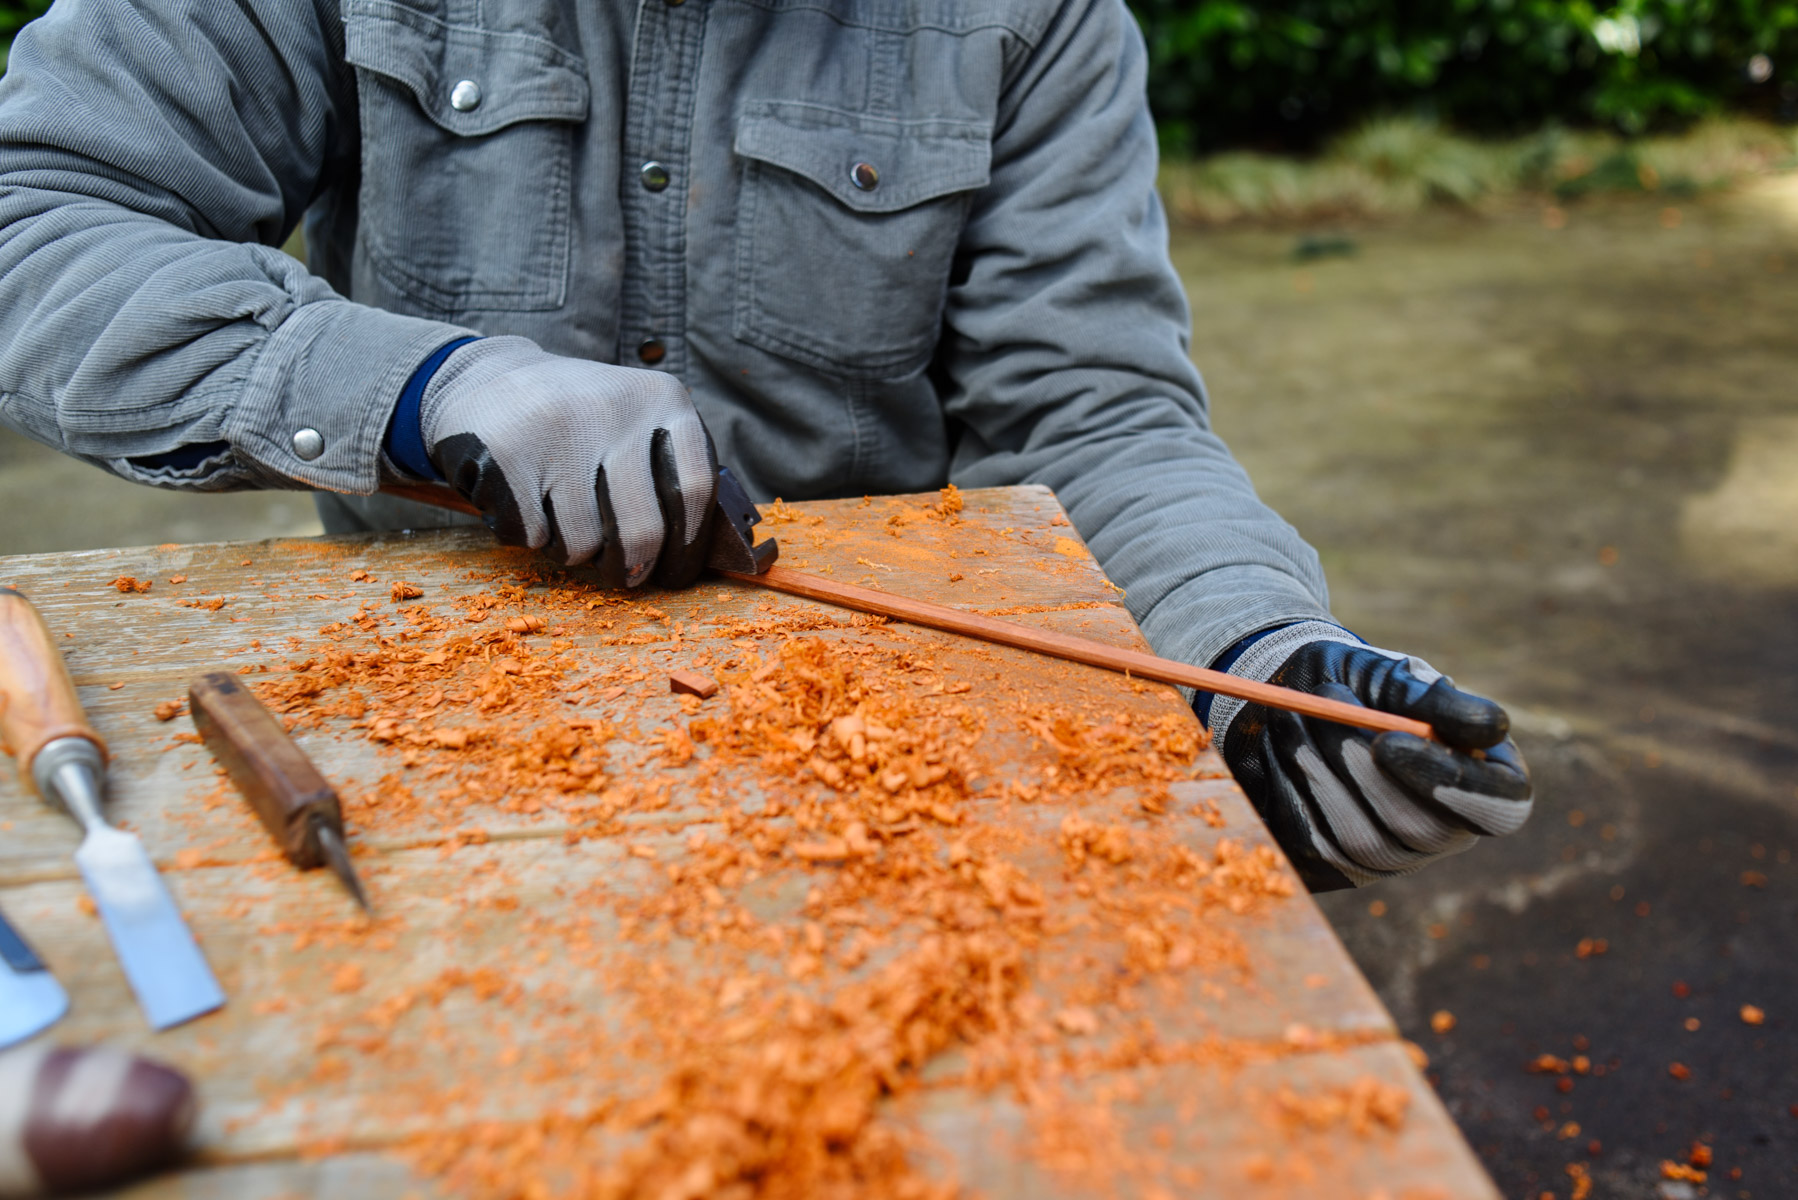 Roughing out the pernambuco stick with a scraper plane. If the weather is nice Jacob prefers to work with pernambuco outside to avoid breathing the irritable orange resinous dust